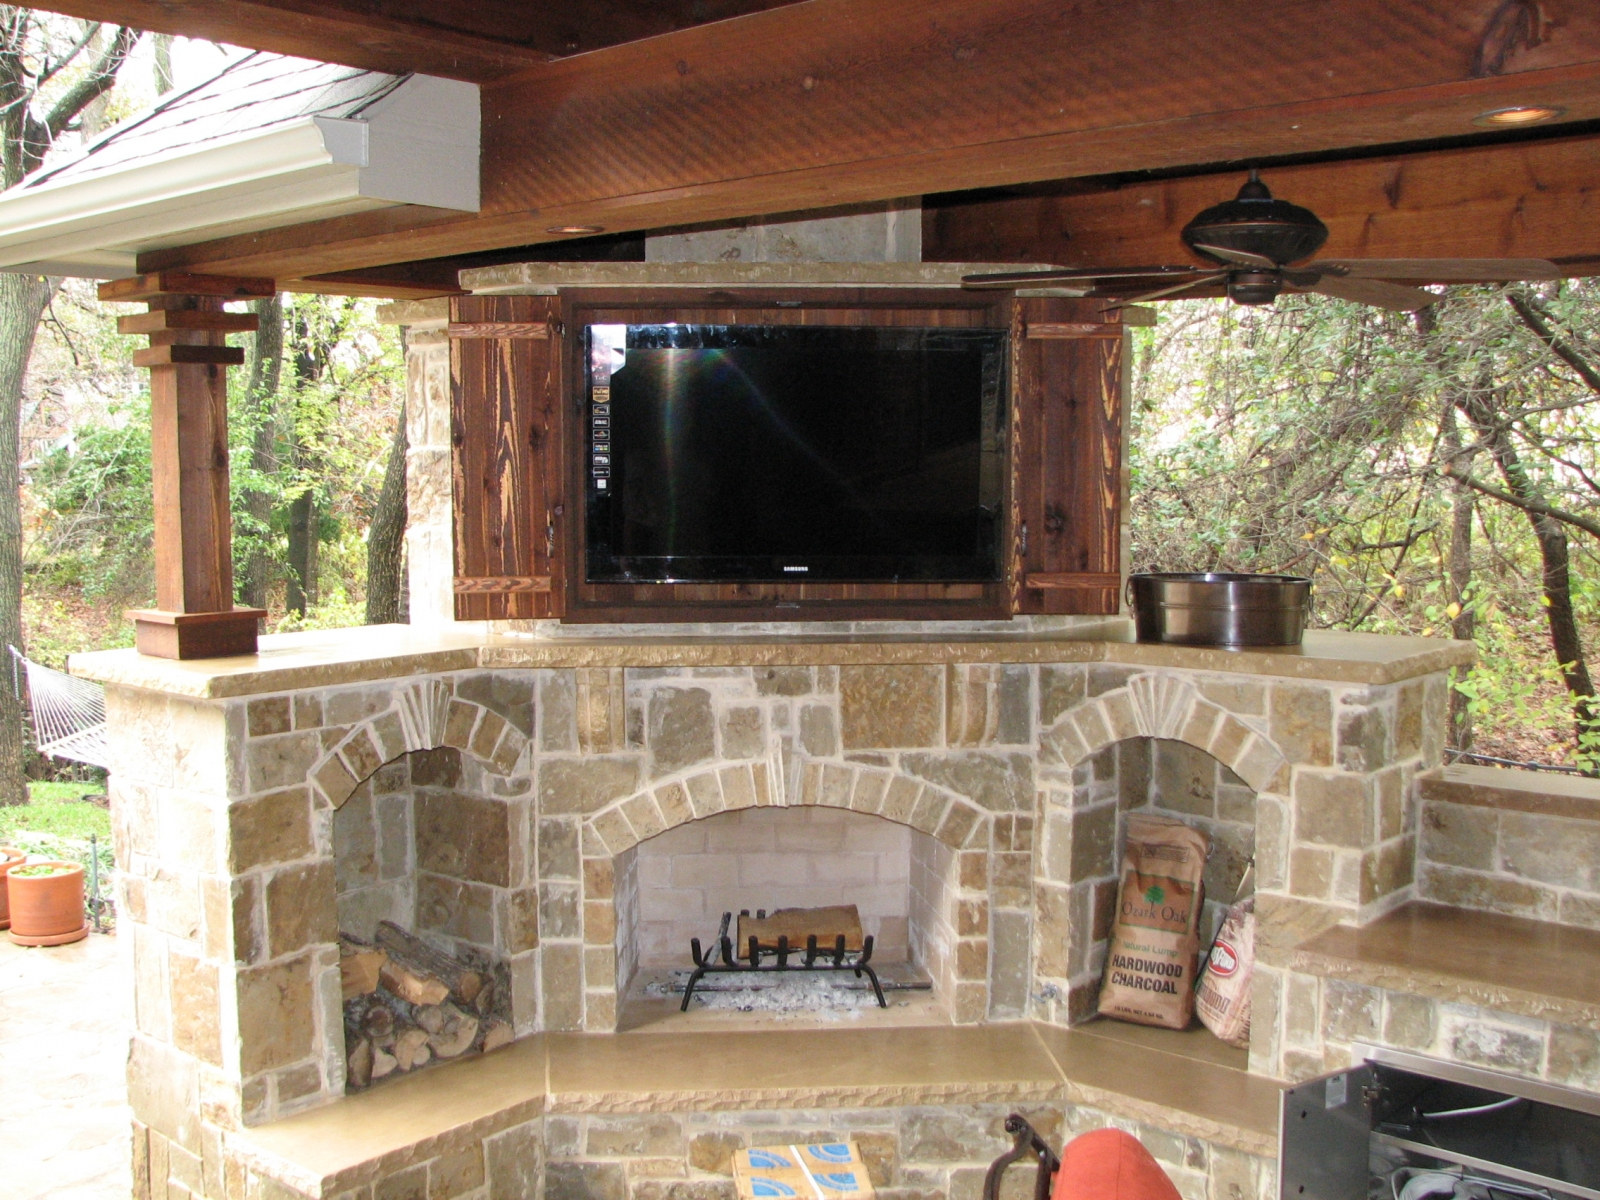 Outdoor tv backyard tv tv custom tv tv lift tv enclosure - Tv Installer Installed Tv With Full Motion Mount In Cedar Cabinet Diy Outdoor